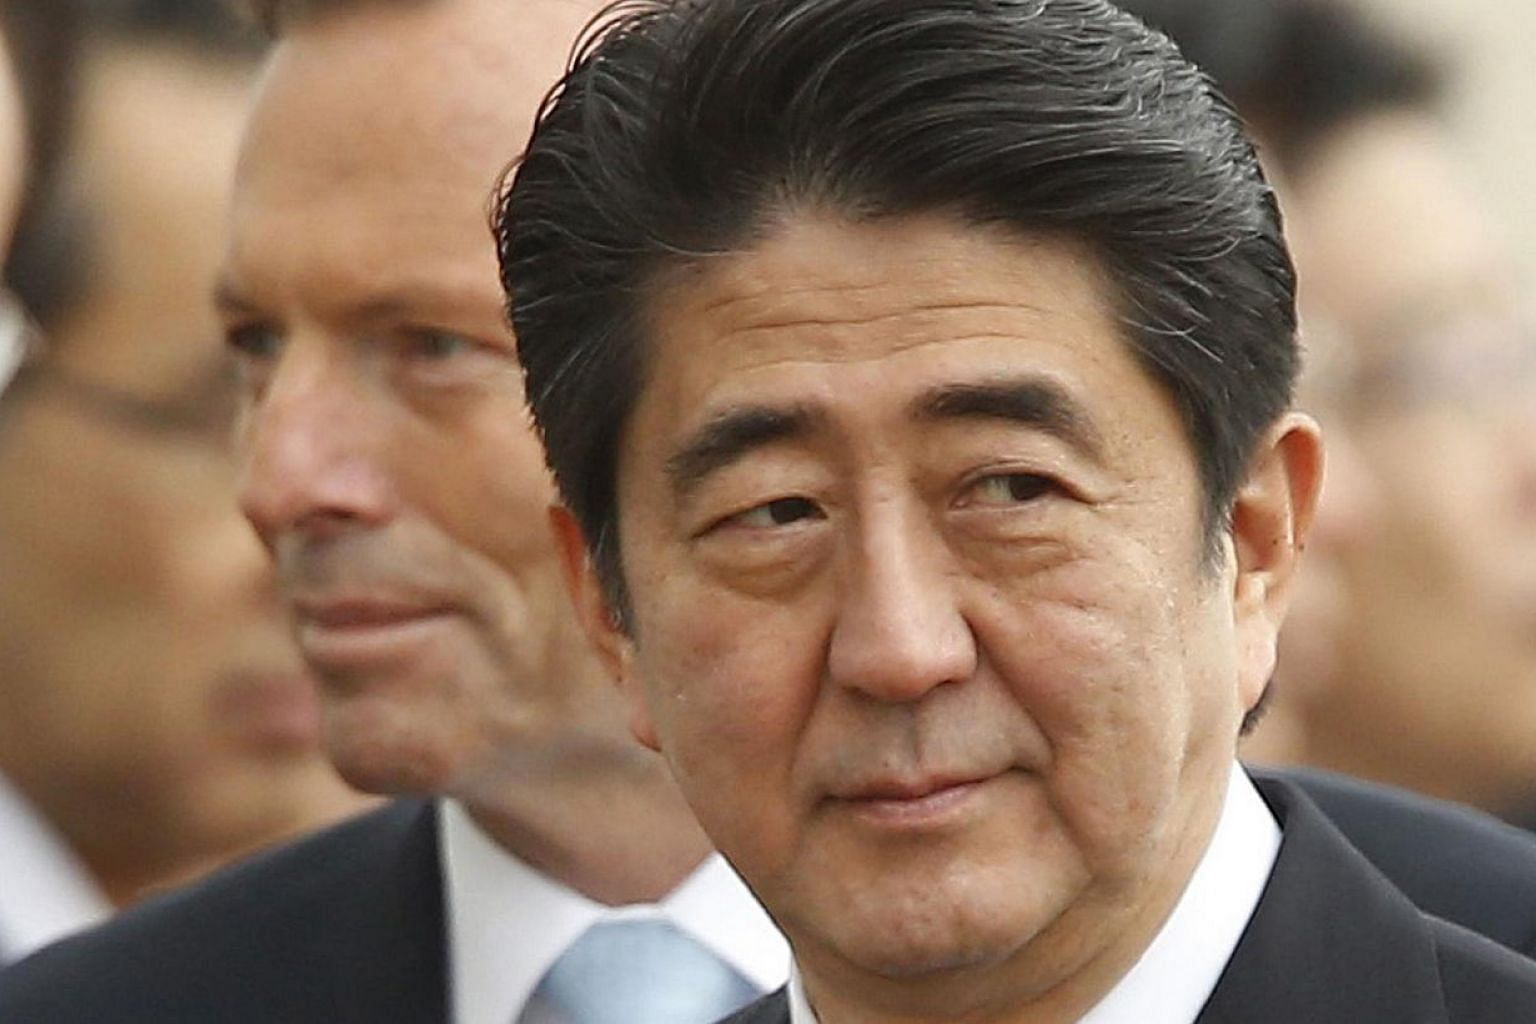 Japan's Prime Minister Shinzo Abe (right) participates in an official arrival ceremony with Australian Prime Minister Tony Abbott (back left) at Parliament House in Canberra on July 8, 2014.Japanese Prime Minister Shinzo Abe has been personally